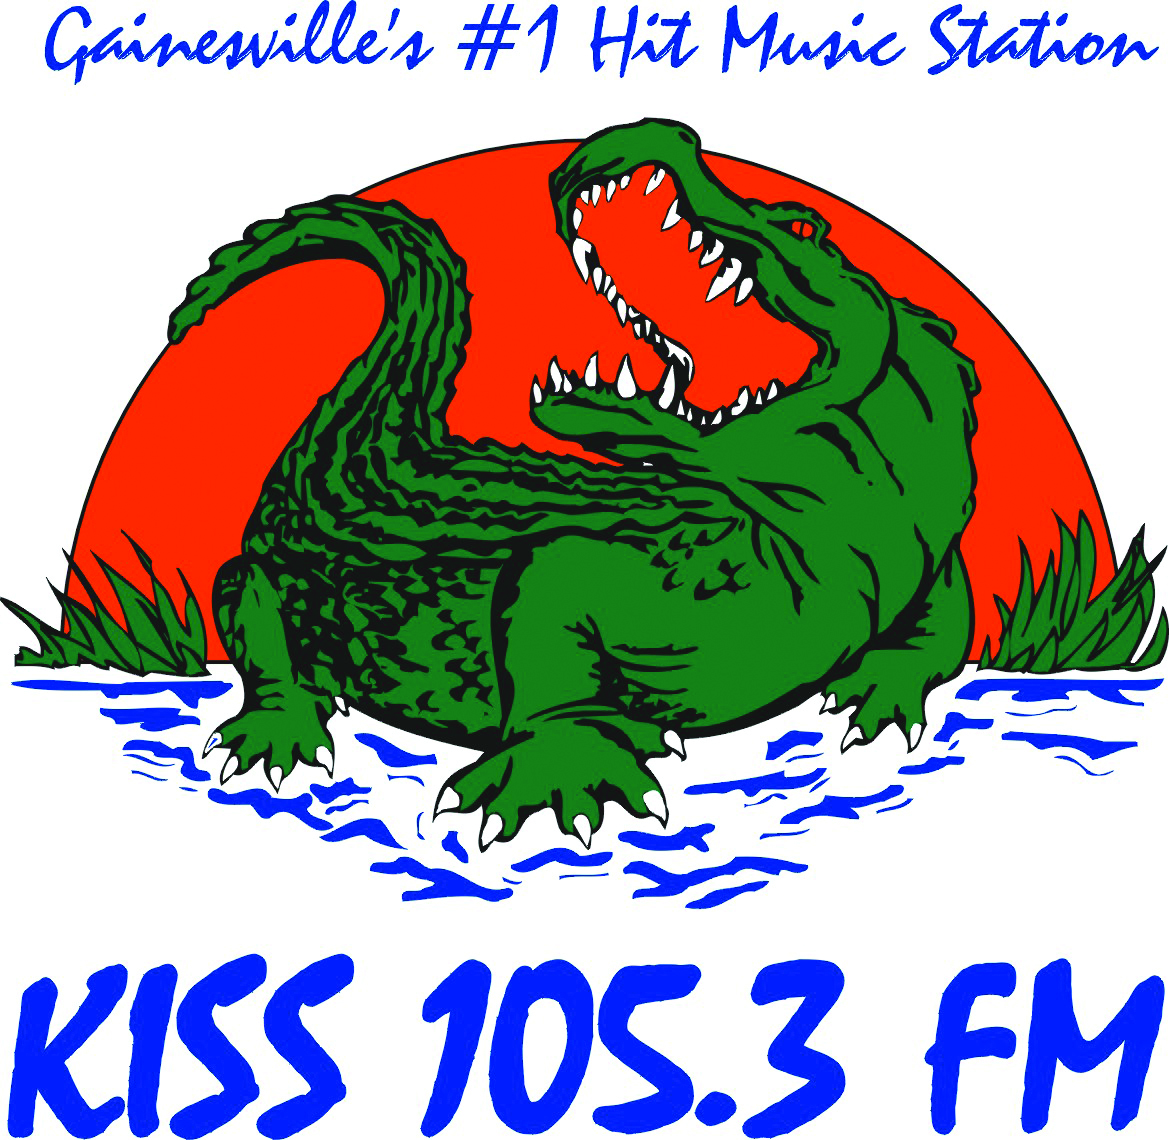 Garnered three 10 second radio mentions between 9am and 2pm on the most popular radio station in Gainesville, FL